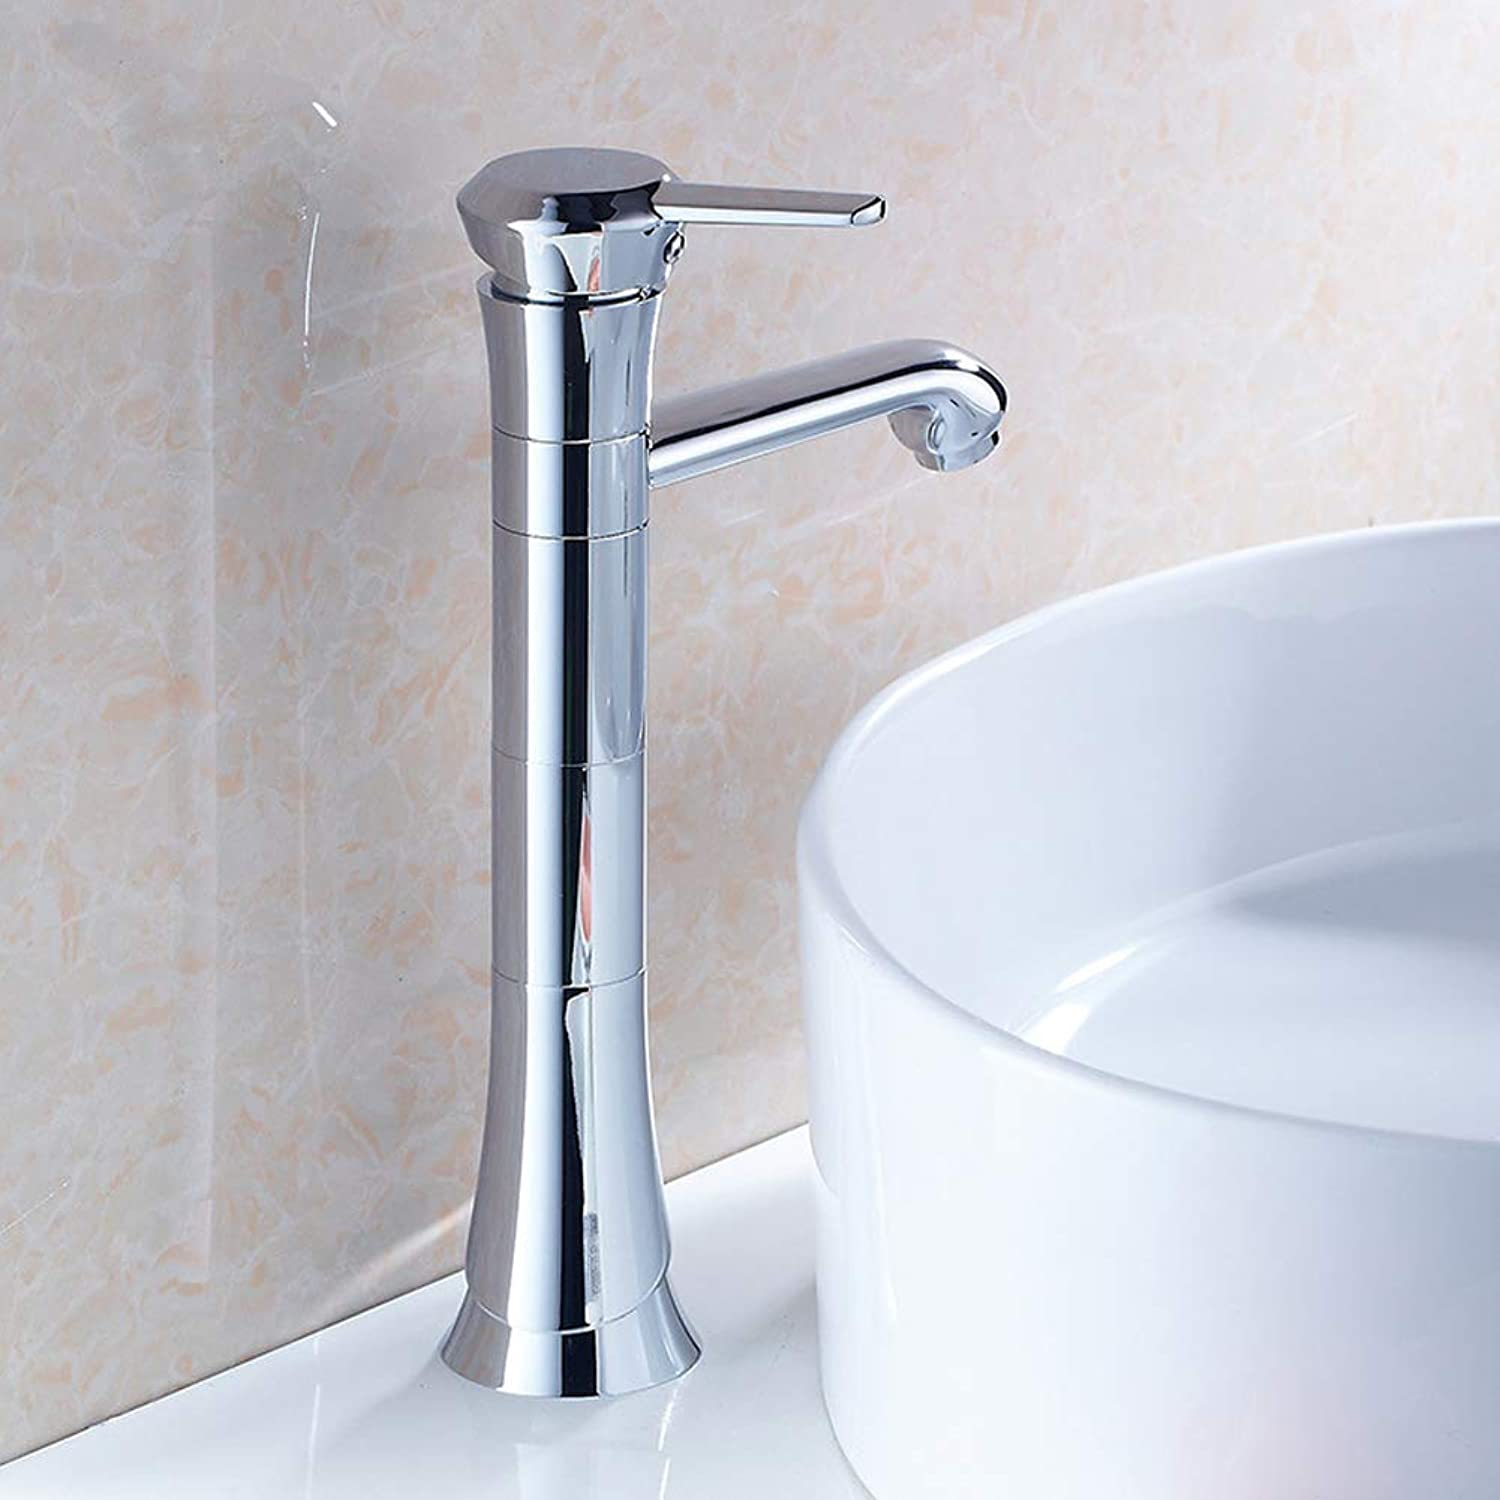 European Style Above Counter Basin Mixer Tap Chrome all Brass Bathroom Sink Hot Cold Taps,SilverFaucet